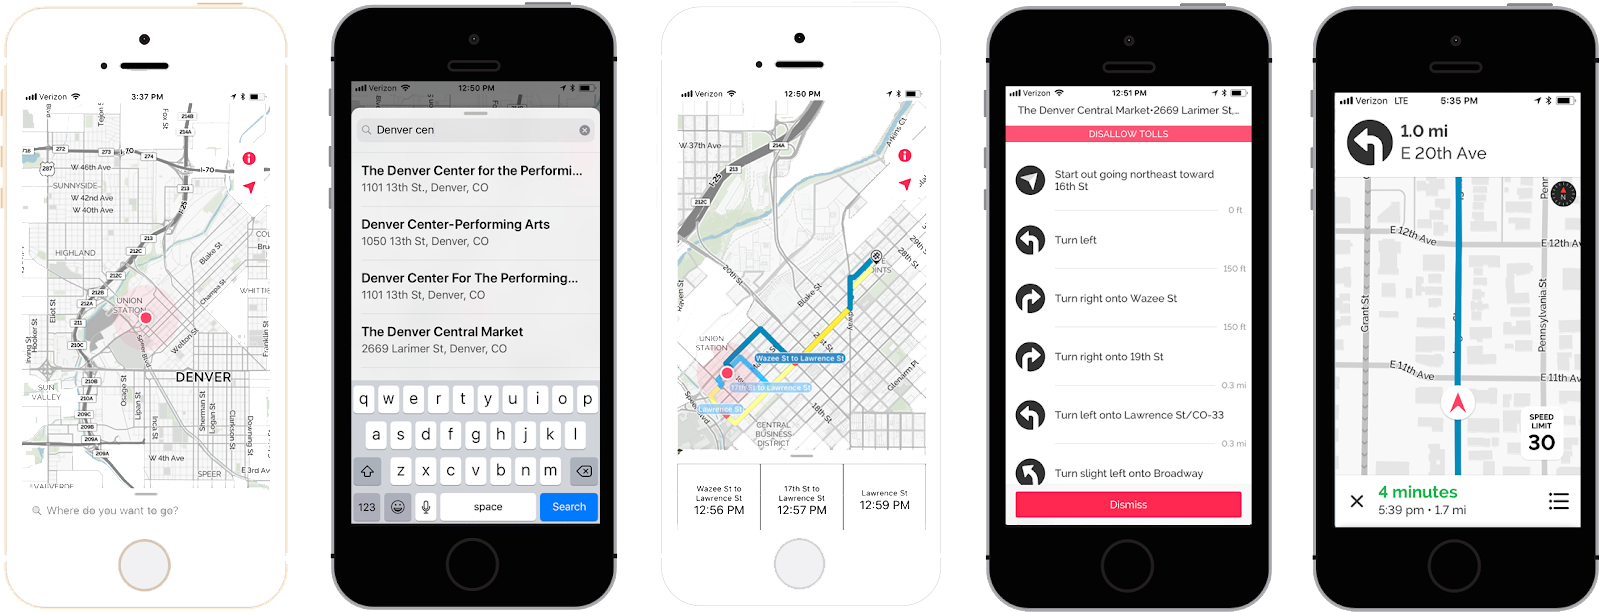 Mapquest SDK is free for smartphone developers, if they provide Mapquest all their customer's data.